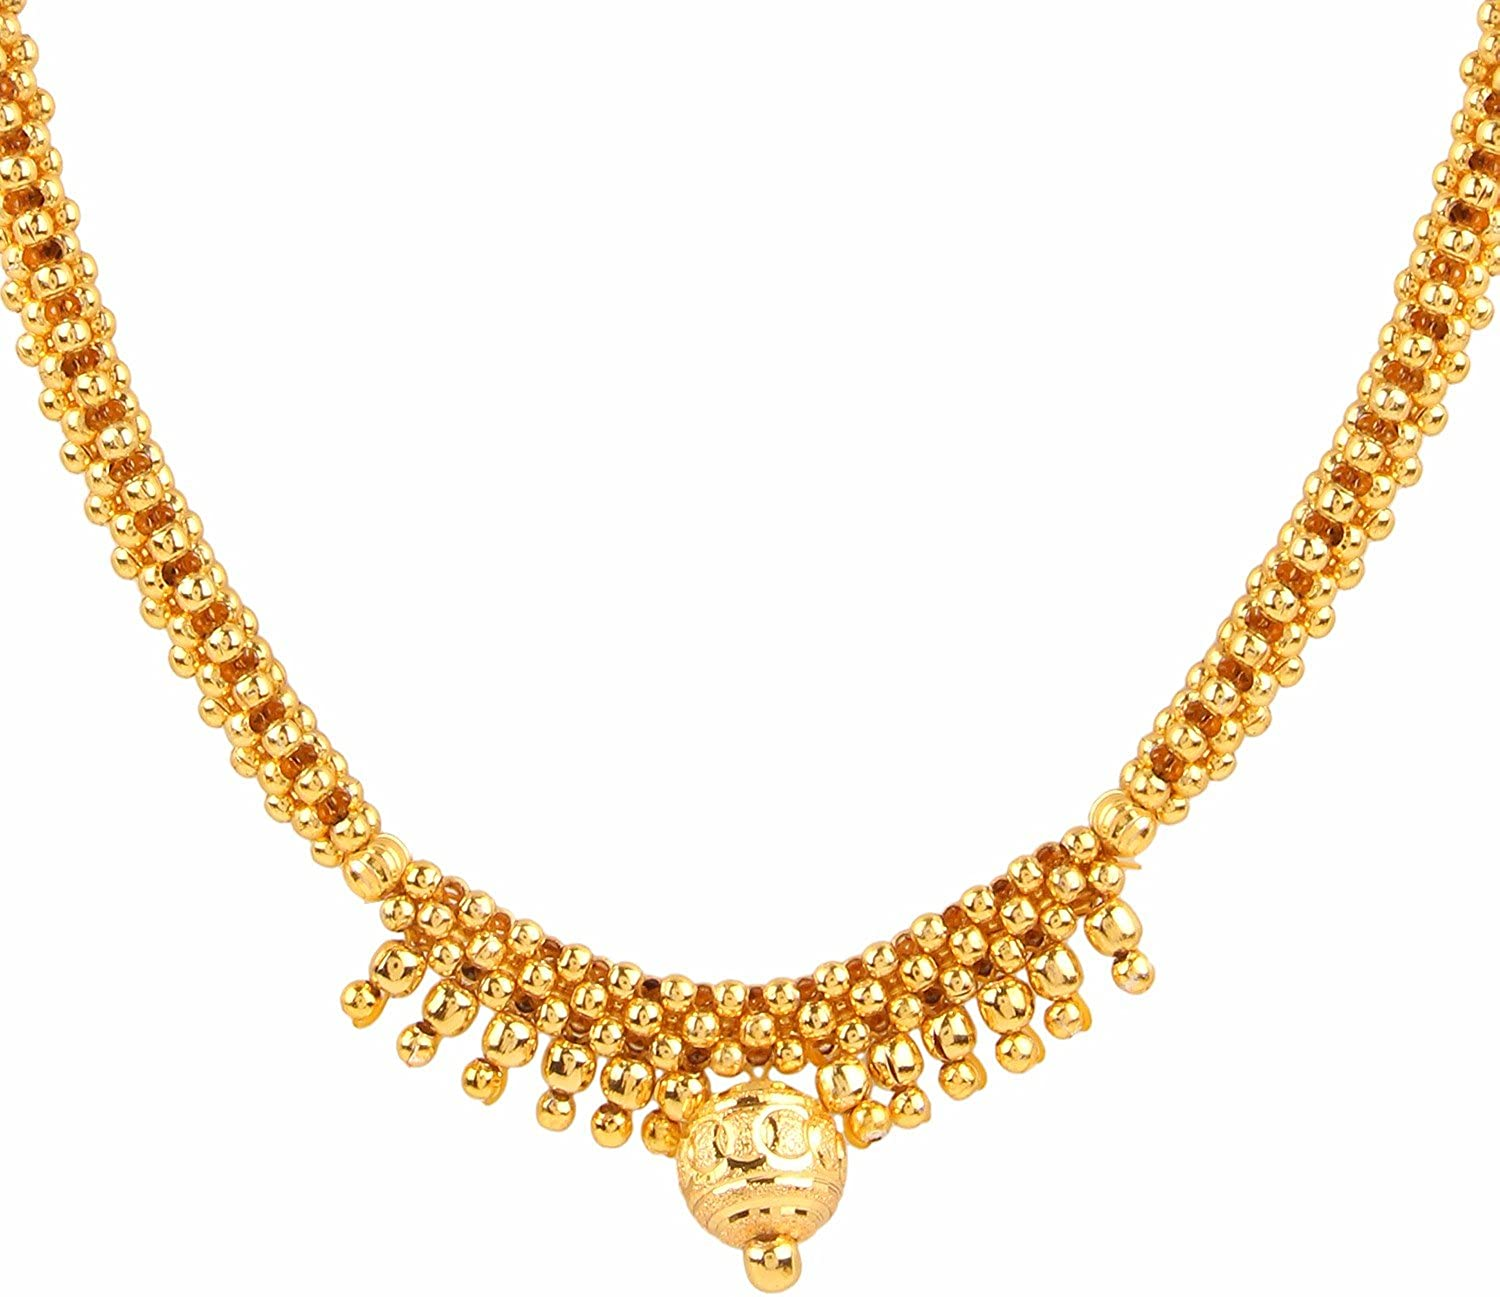 Efulgenz Indian Bollywood Traditional Heavy Bridal Designer Jewelry Choker Necklace Set in Antique 18K Gold Tone for Women and Girls